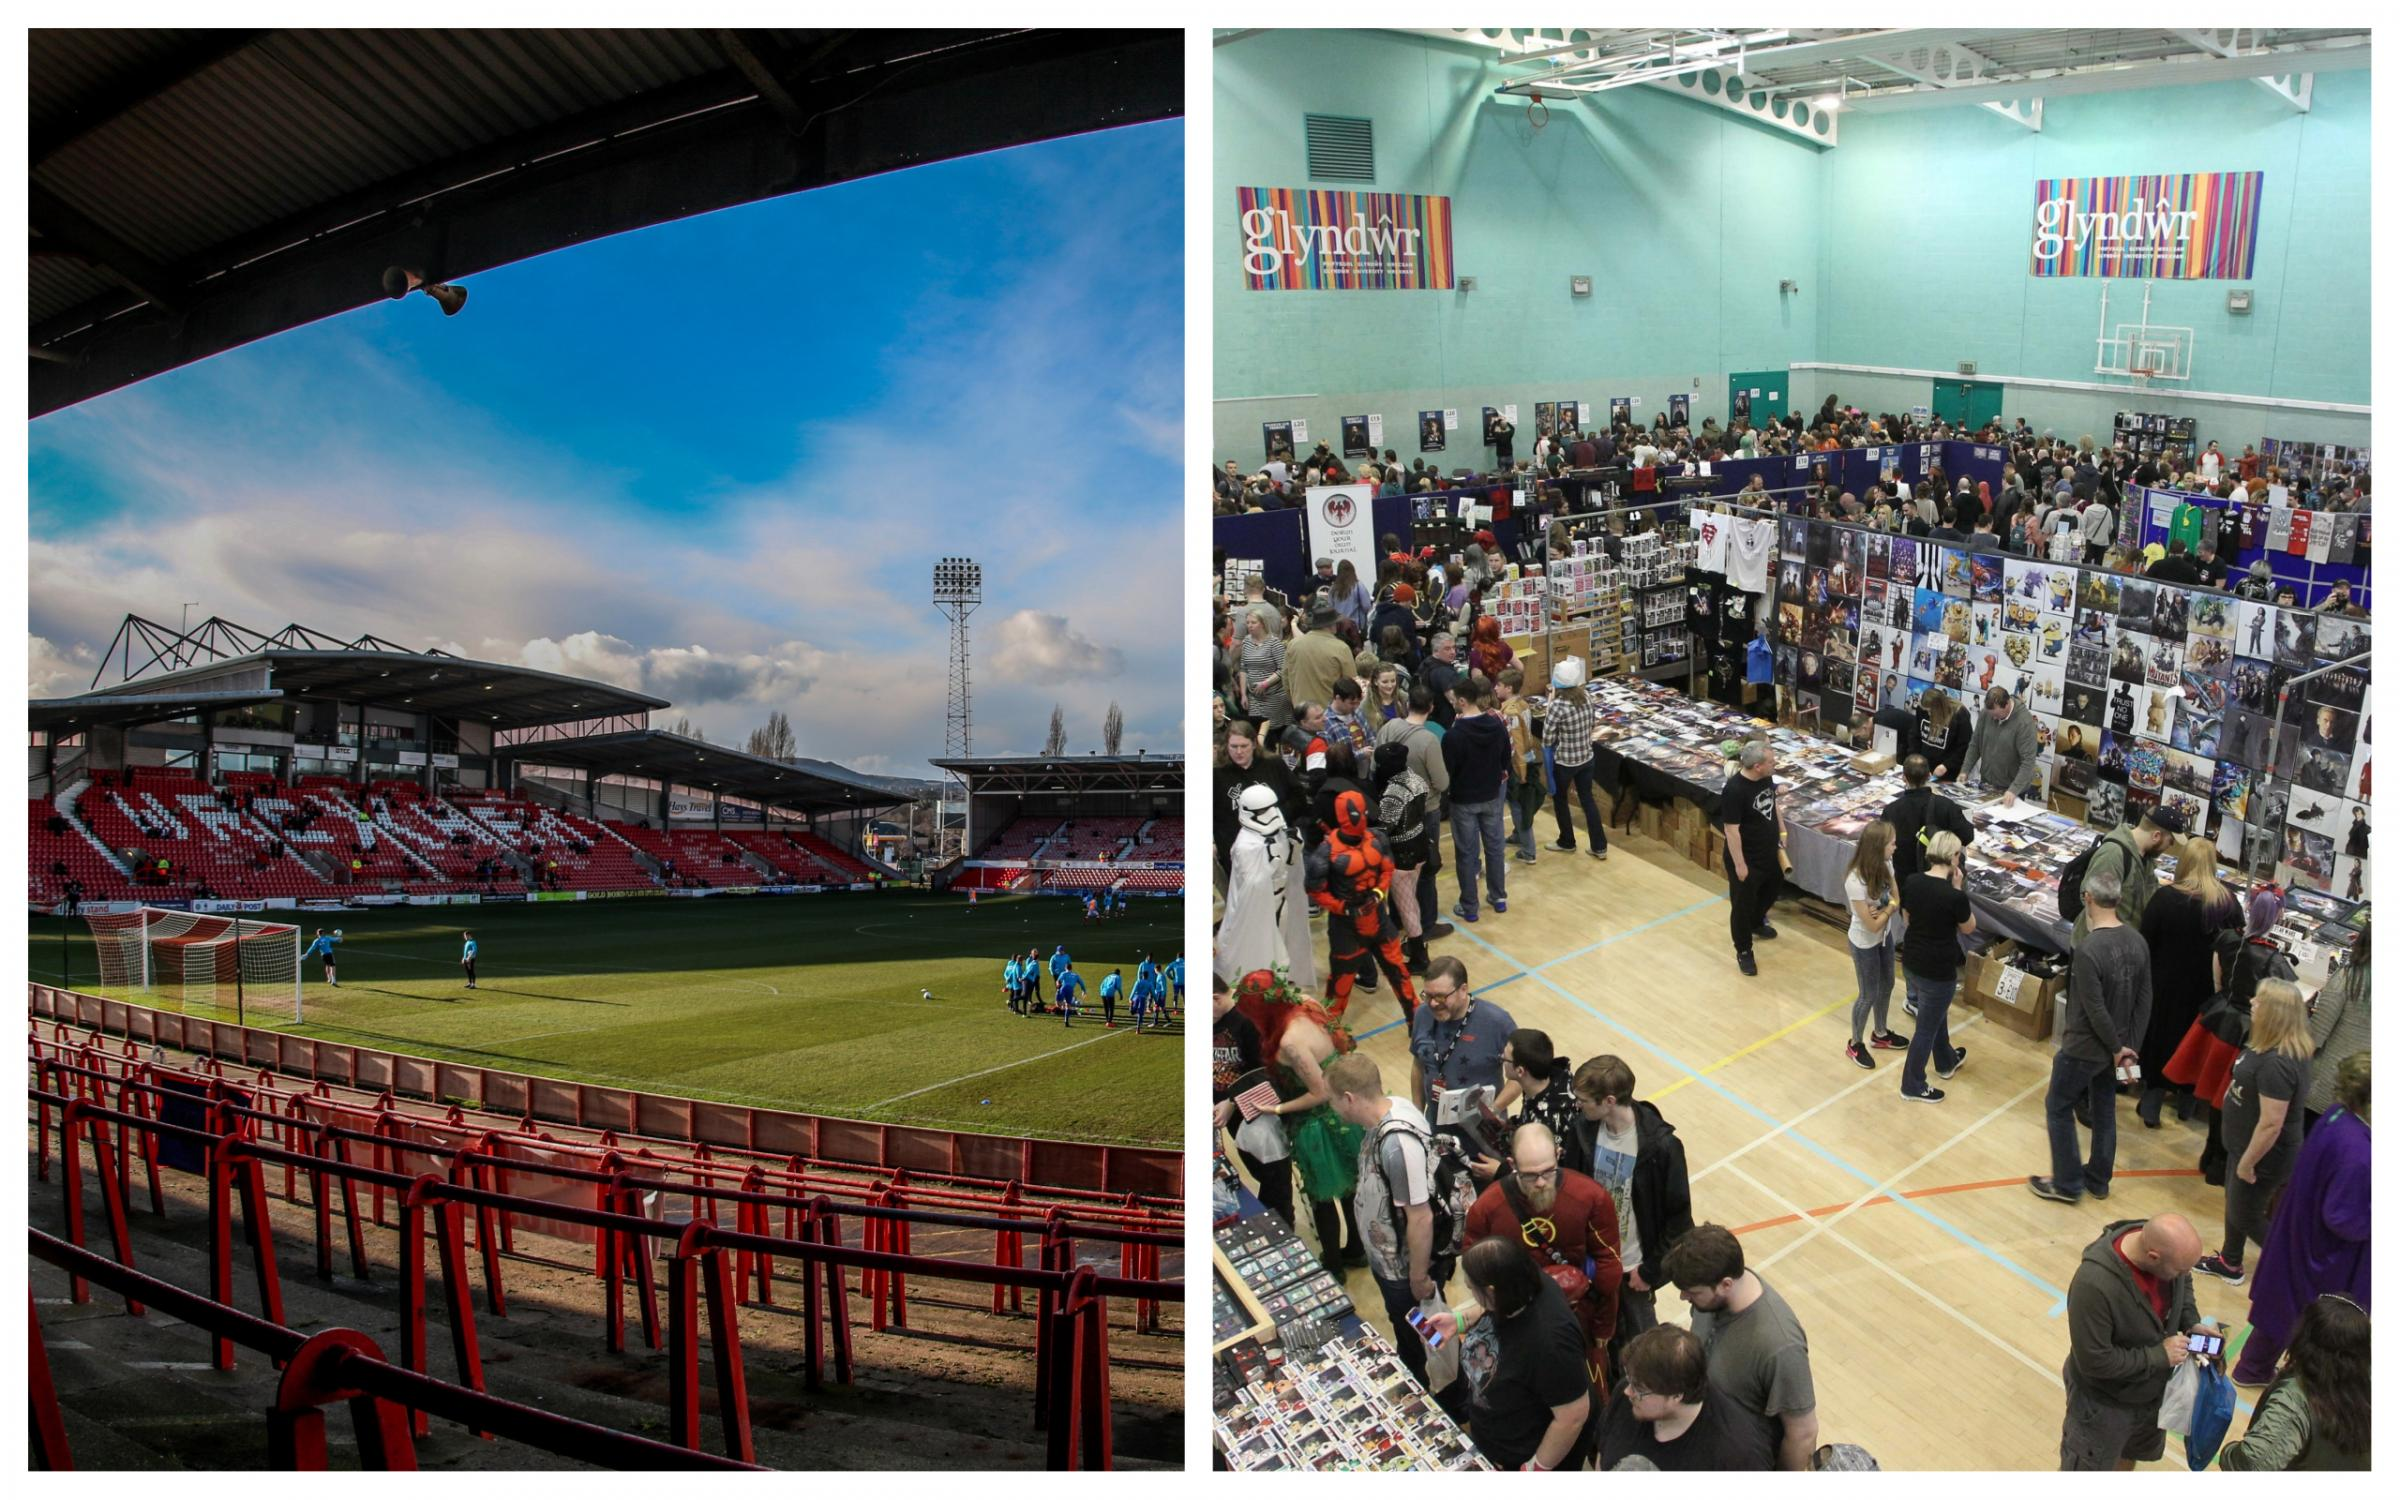 Extra police to be deployed as thousands of people expected in Wrexham for FA Cup Tie and Wales Comic Con